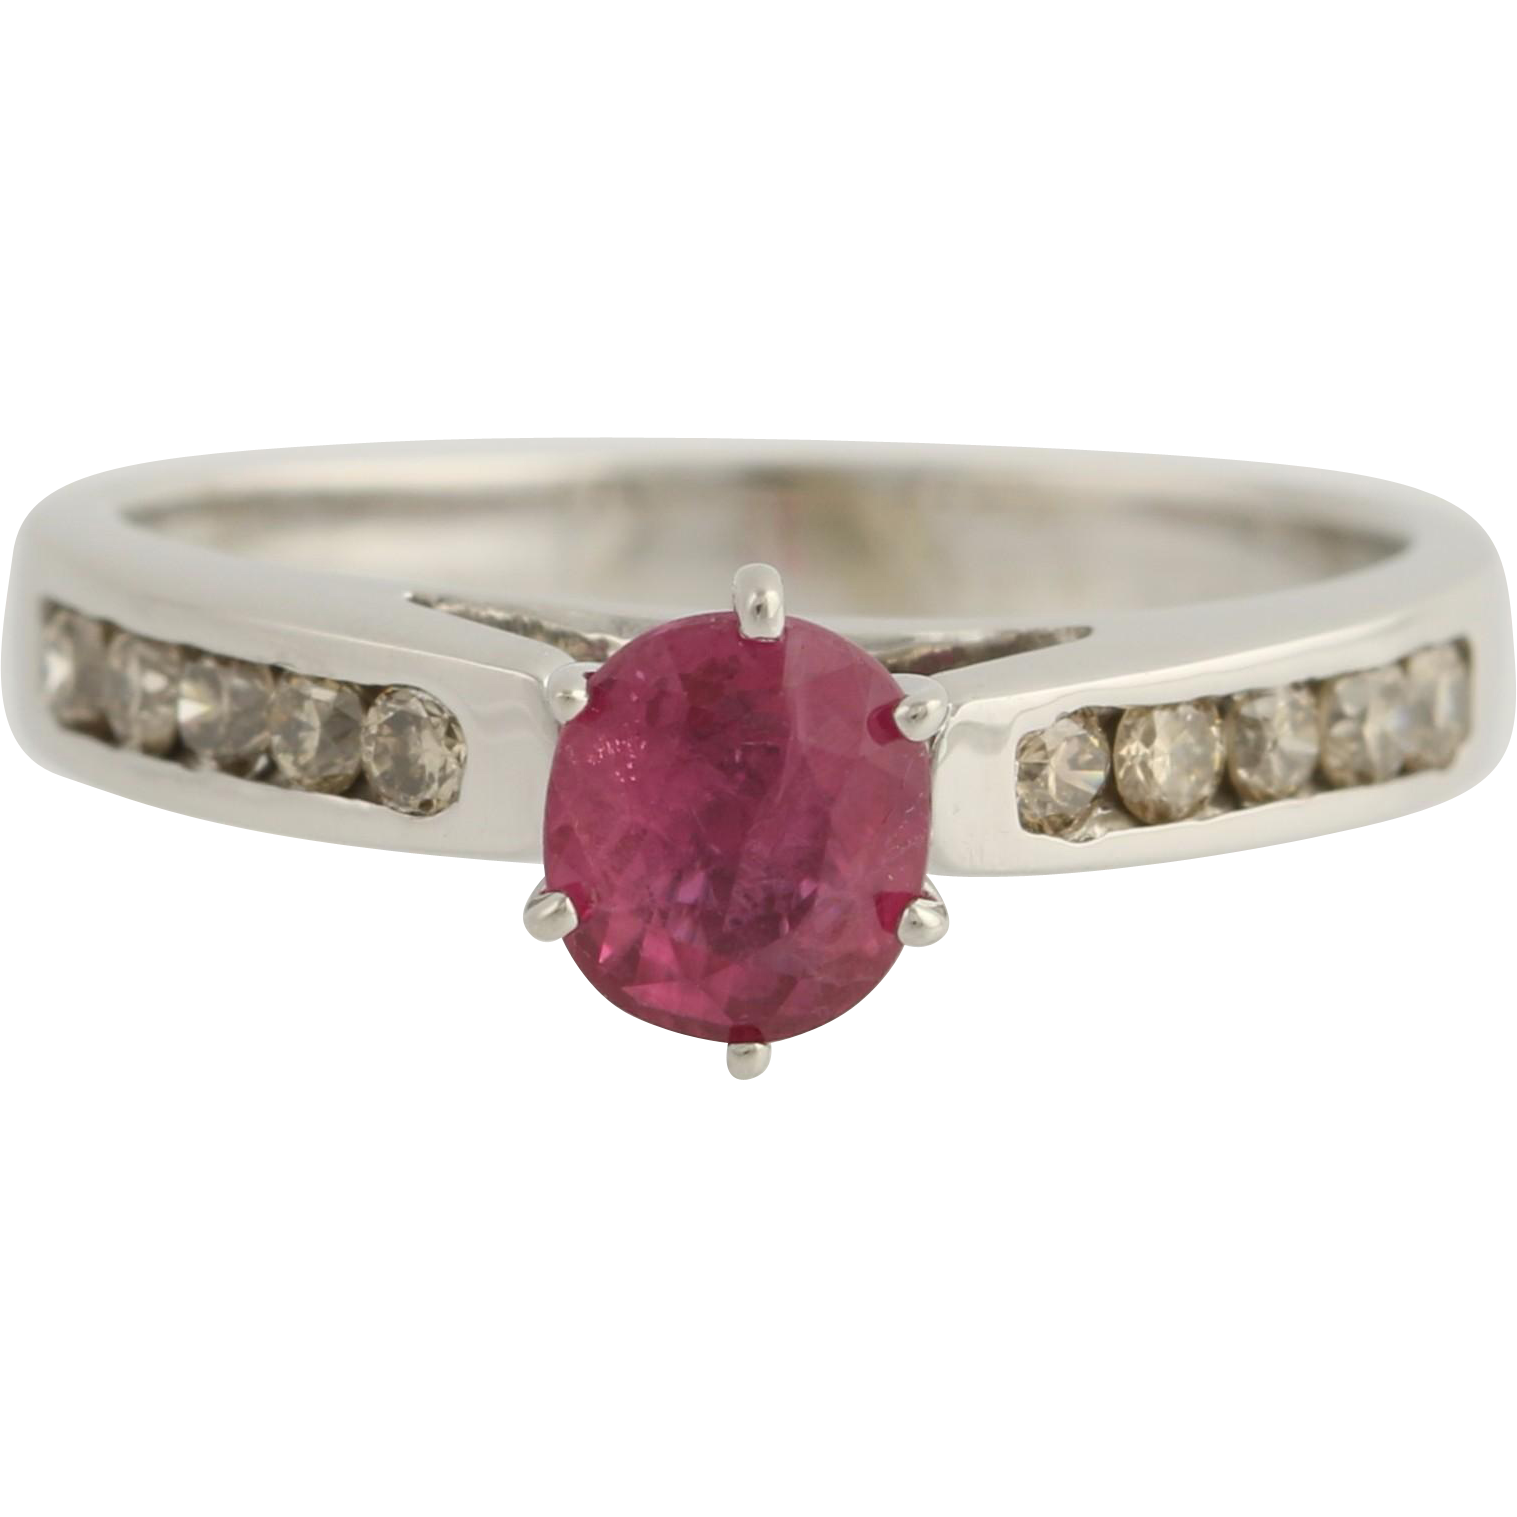 Ruby & Diamond Ring - 10k White Gold Engagement Size 7 1/4 Genuine 1.23ctw